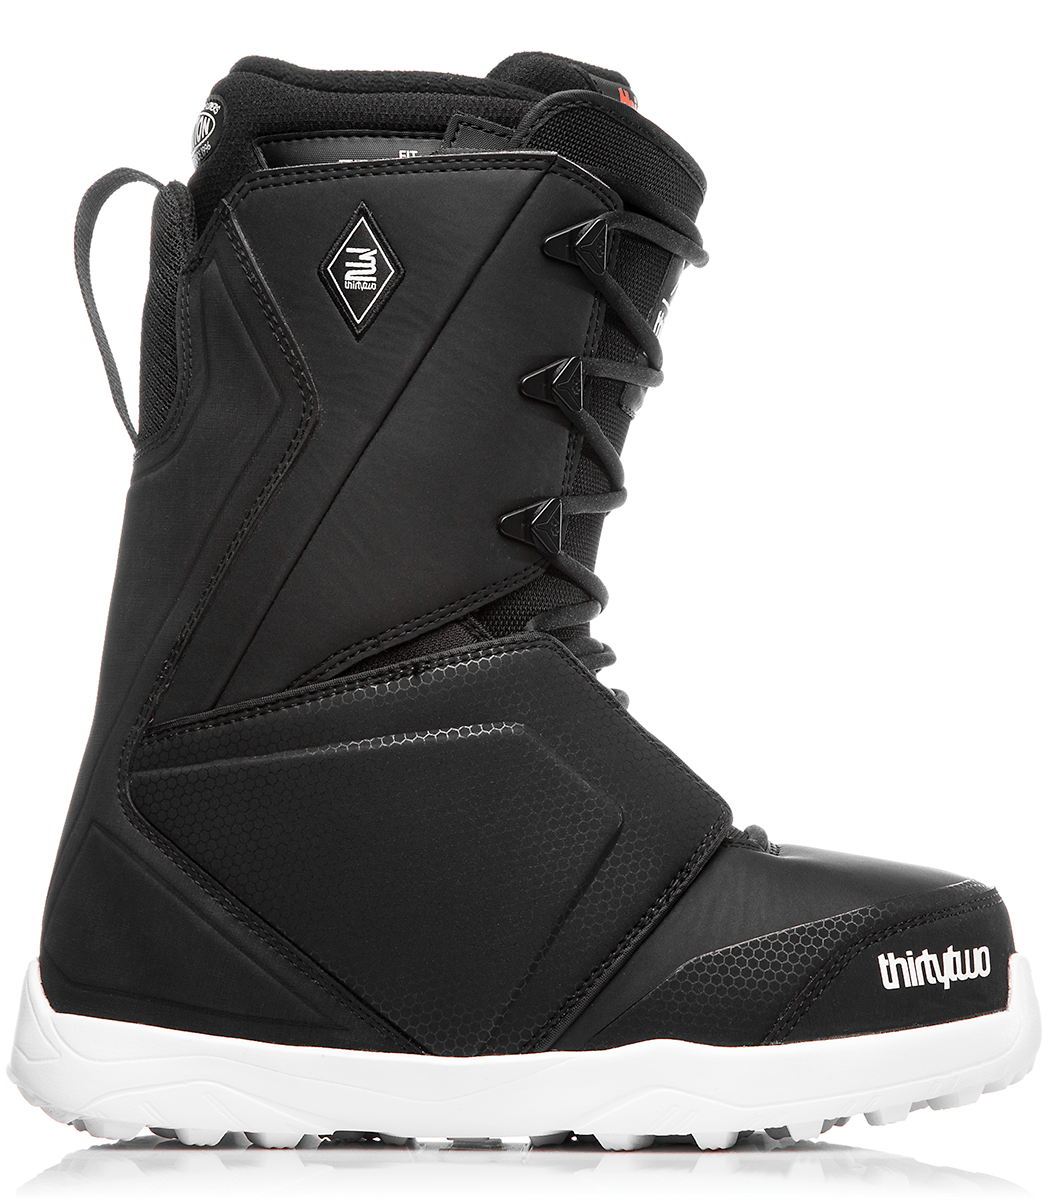 d0f261b99 THIRTY TWO Lashed Black Snowboard Boots 2019